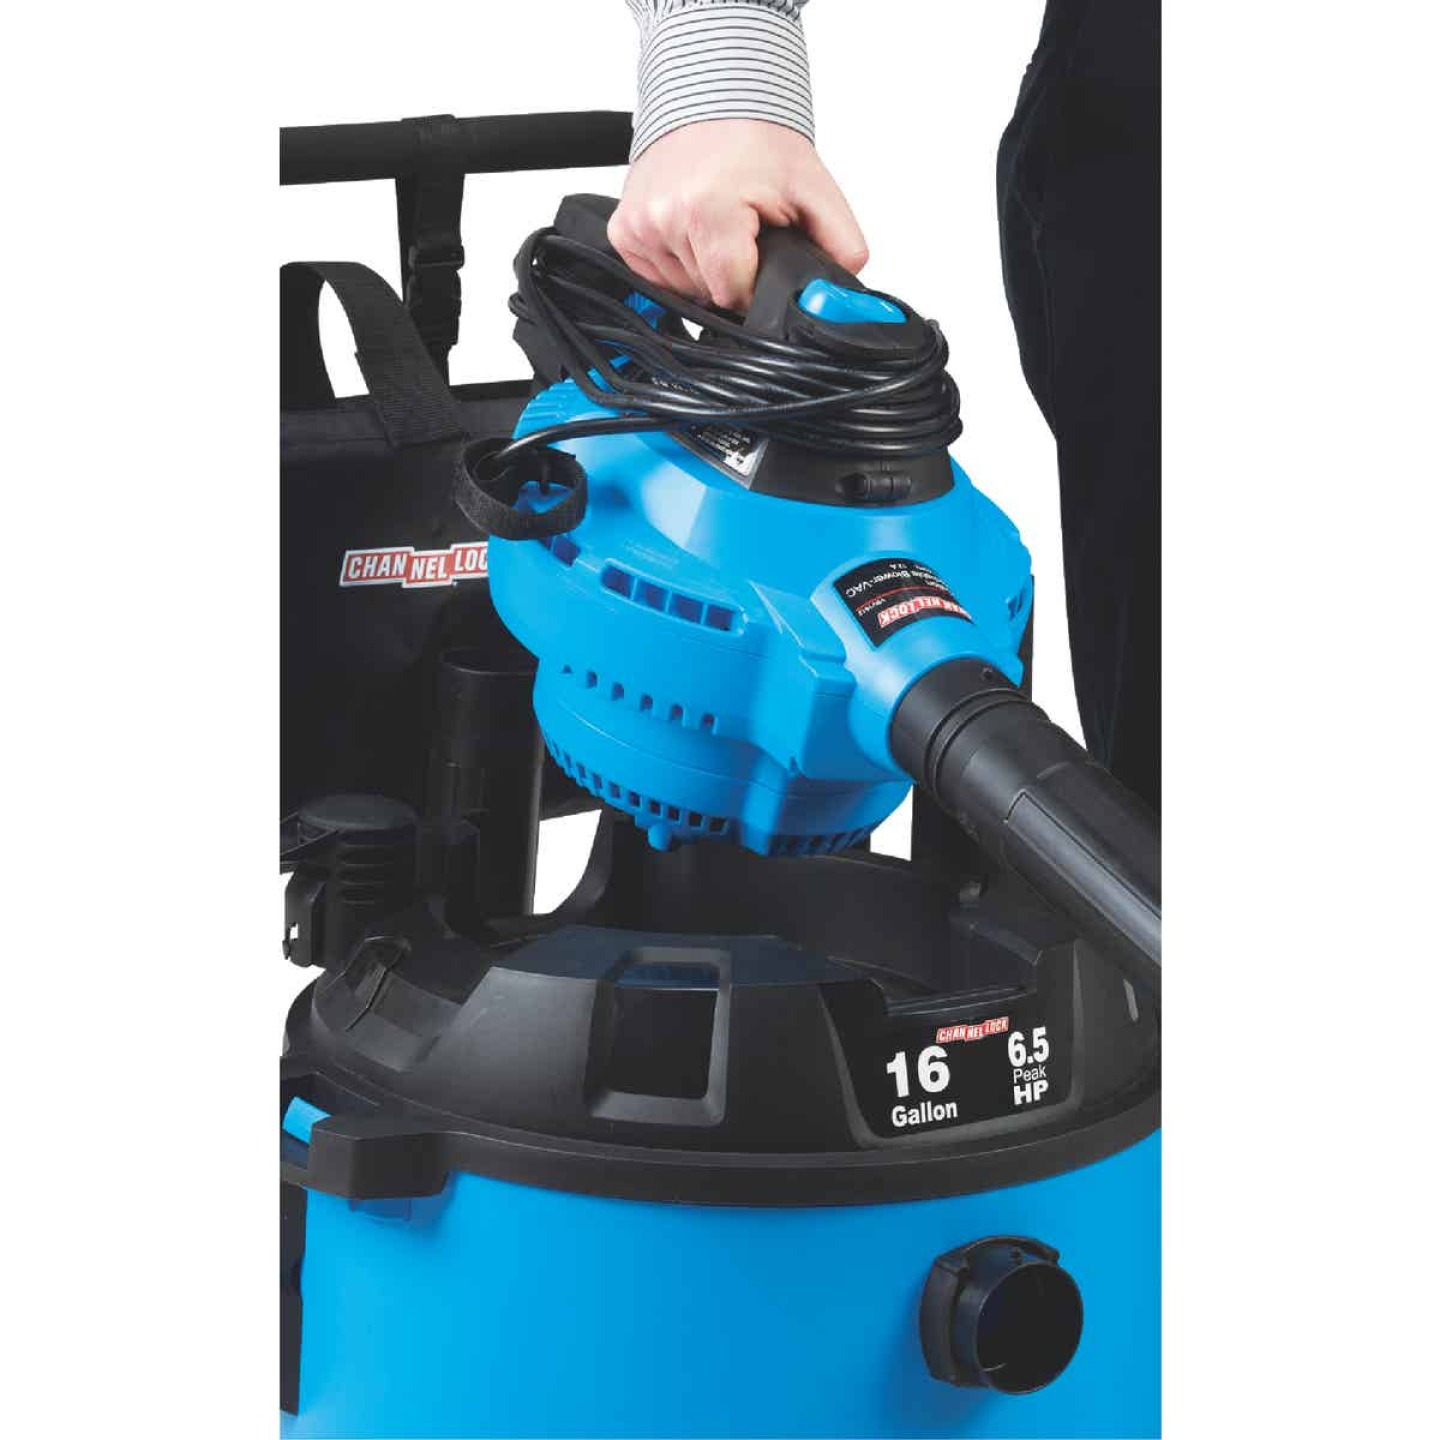 Channellock 16 Gal. 6.5-Peak HP Wet/Dry Vacuum with Blower Image 8